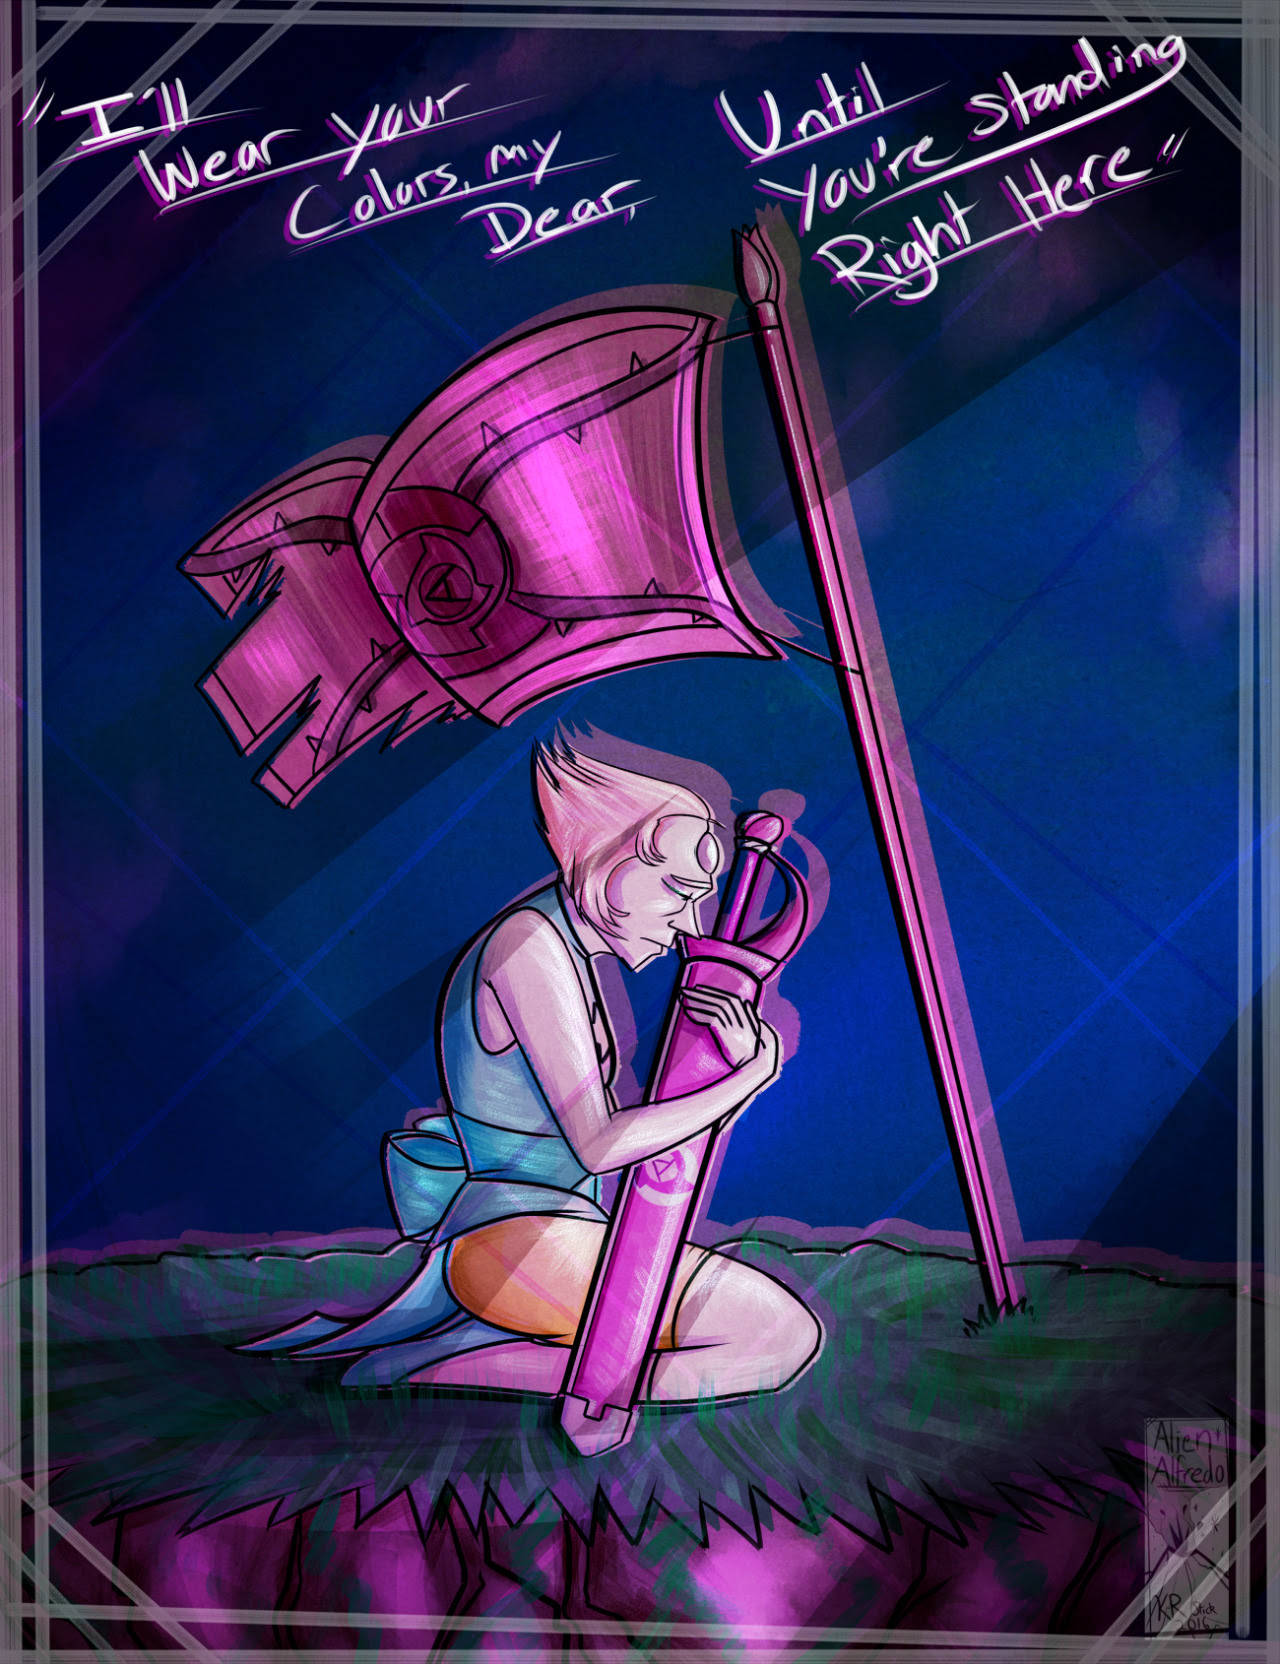 Commission for @jerk-bending of a very sad Pearl missing Rose Quartz. Song lyrics from Colors by April Smith DeviantART - Furaffinity - Weasyl - Picarto